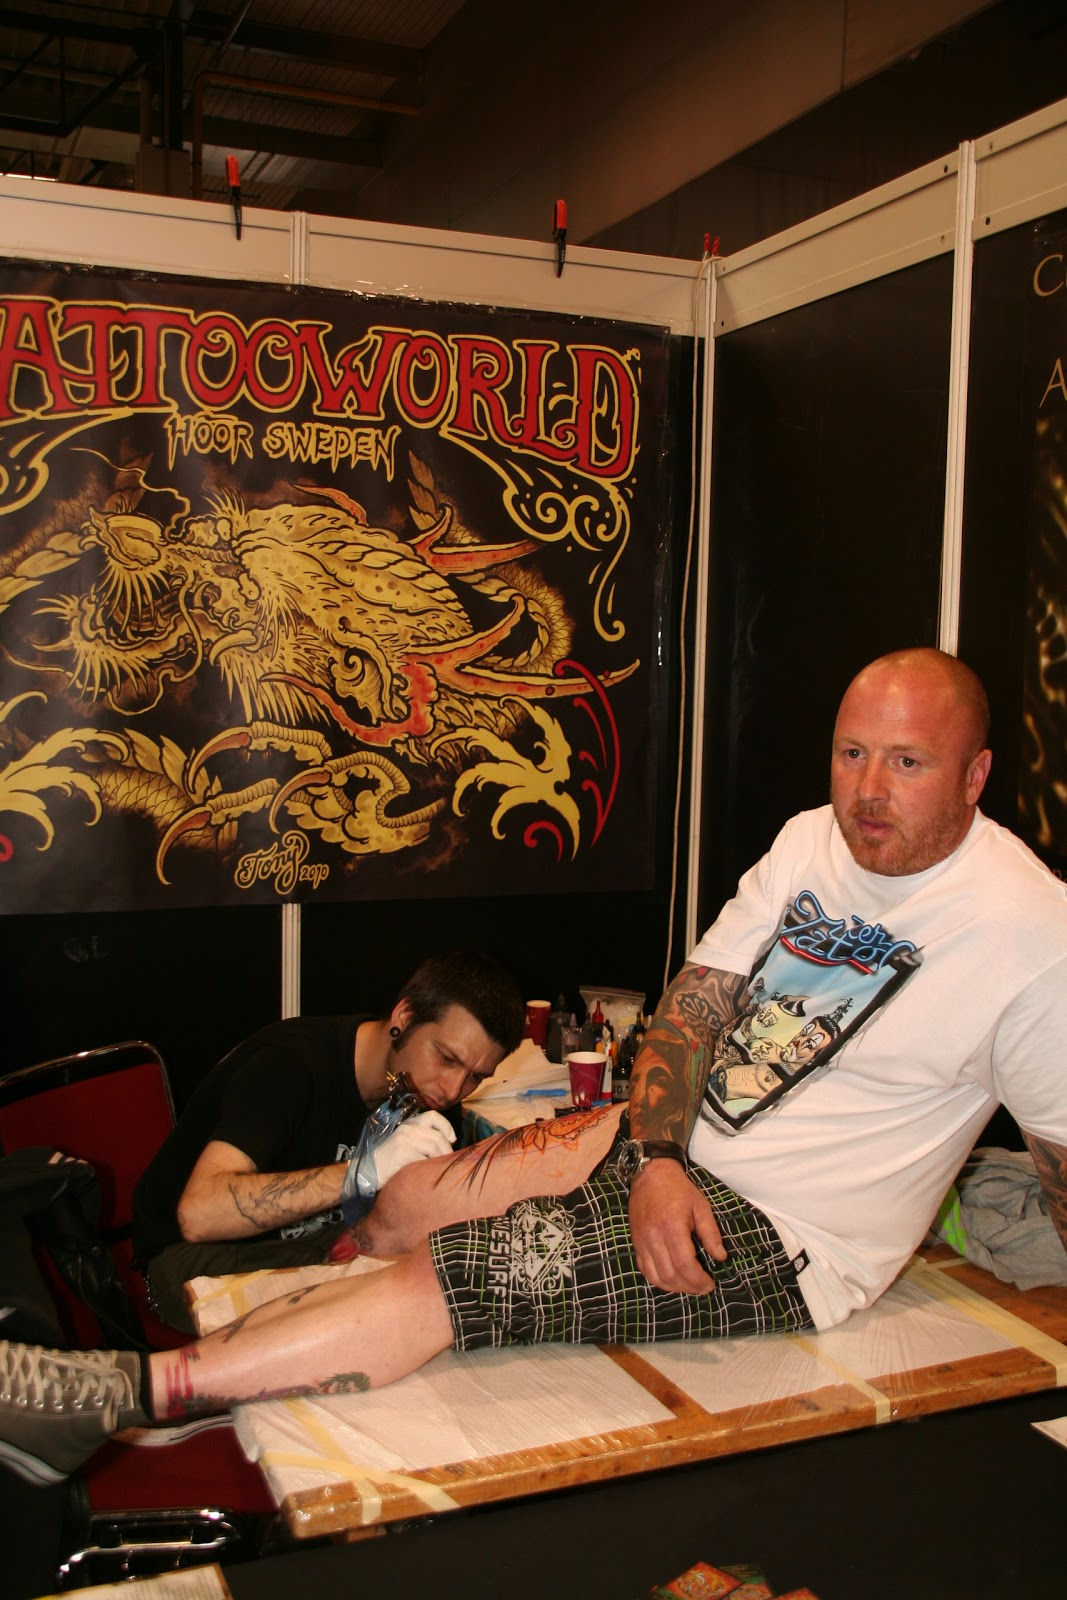 tattooworld h r sweden alex and tony are back in the shop after the dortmund tattoo convention. Black Bedroom Furniture Sets. Home Design Ideas